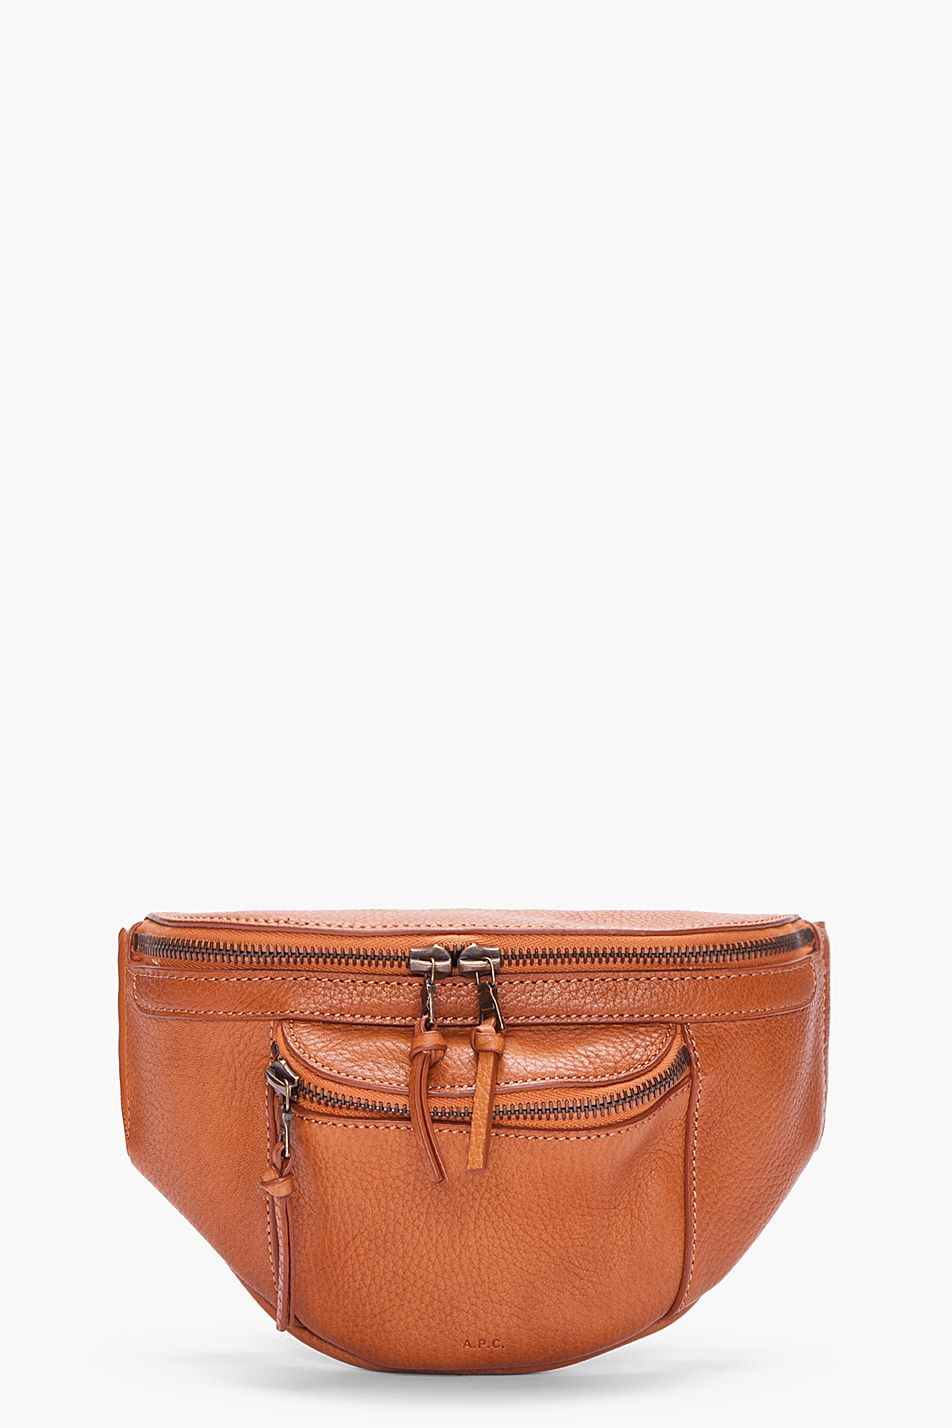 55689a5405d A.P.C. Tan Pebbled Leather Waist Bag | Men / Grooms | Bags, Leather ...